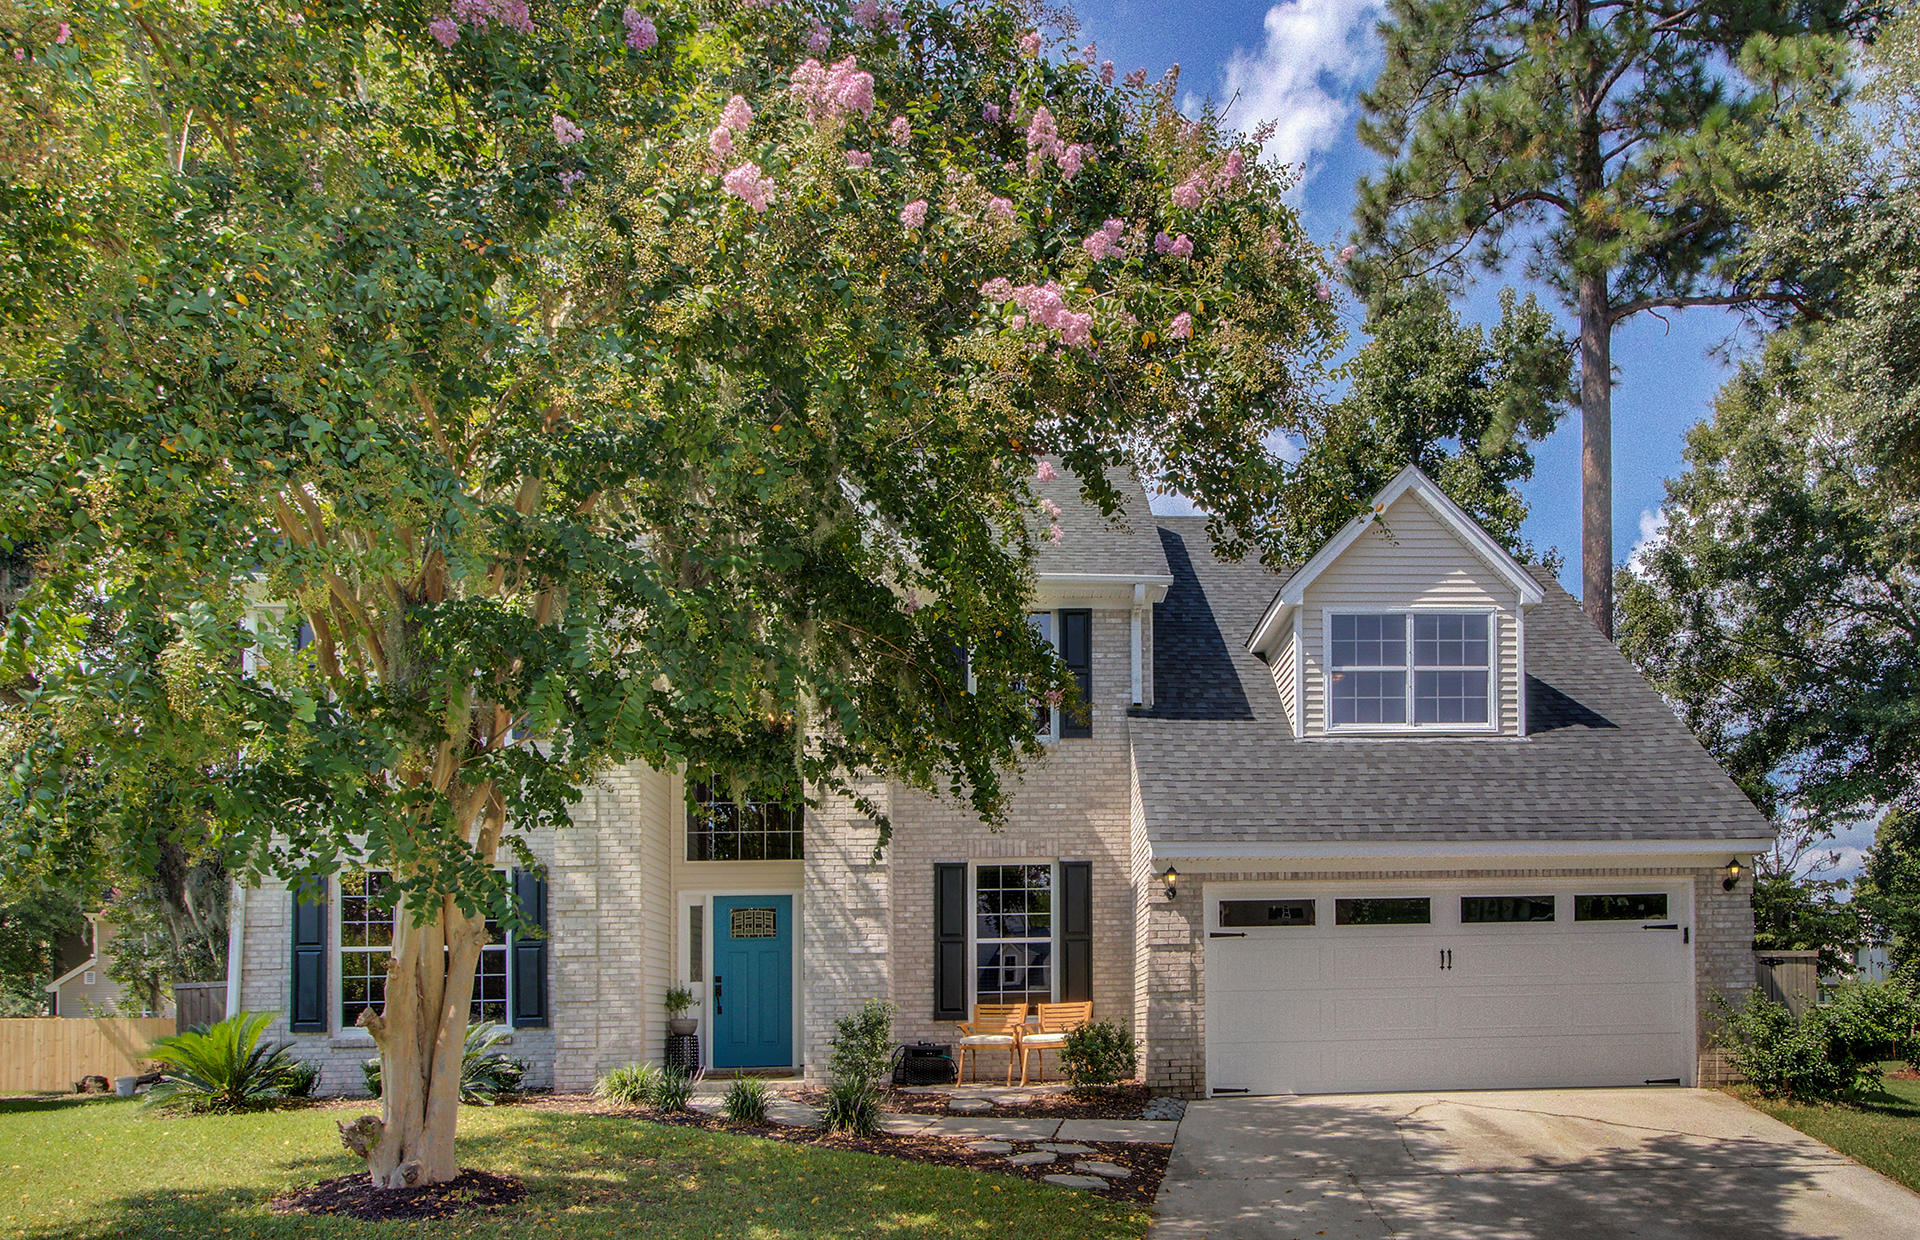 5409 Cattells Blf North Charleston, SC 29420